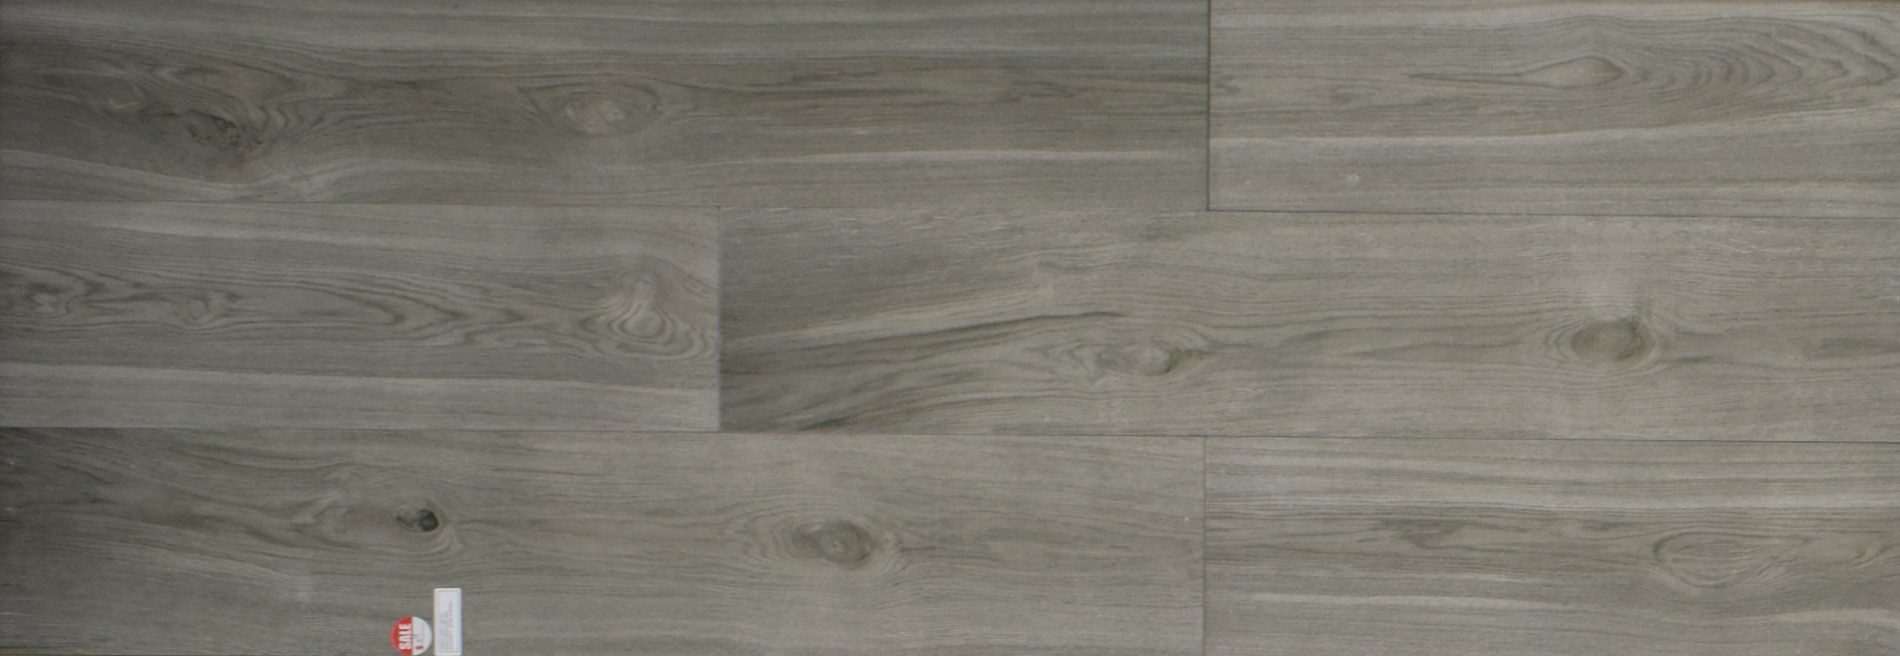 Hardy Grey Wood Look Porcelain Tile 9x48